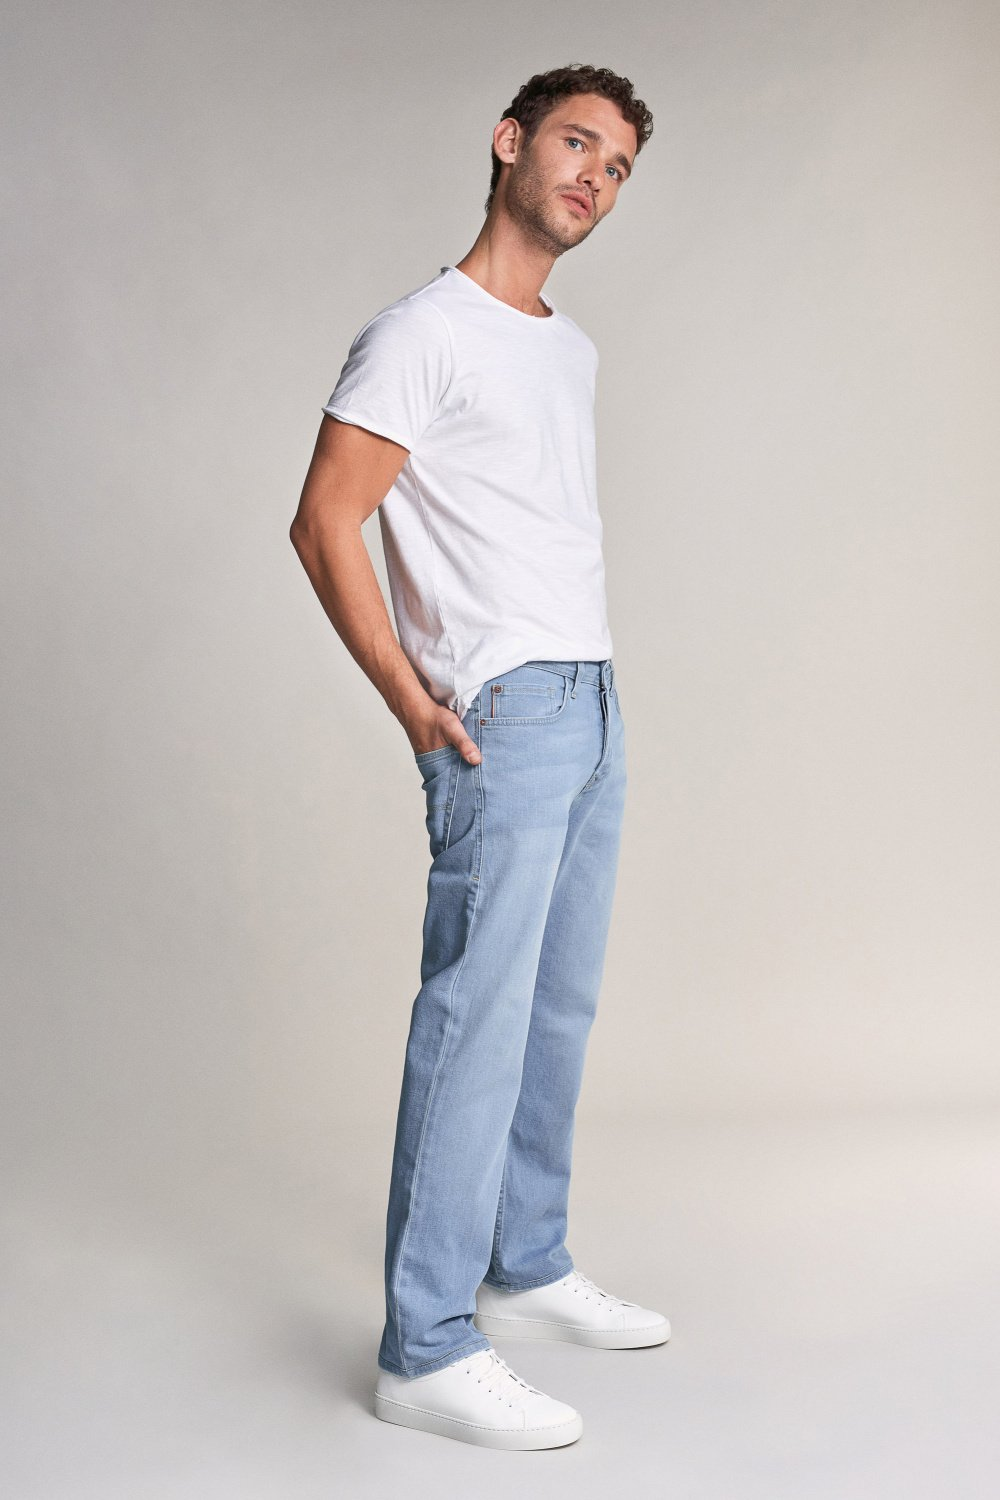 Navarro straight jeans in light rinse - Salsa